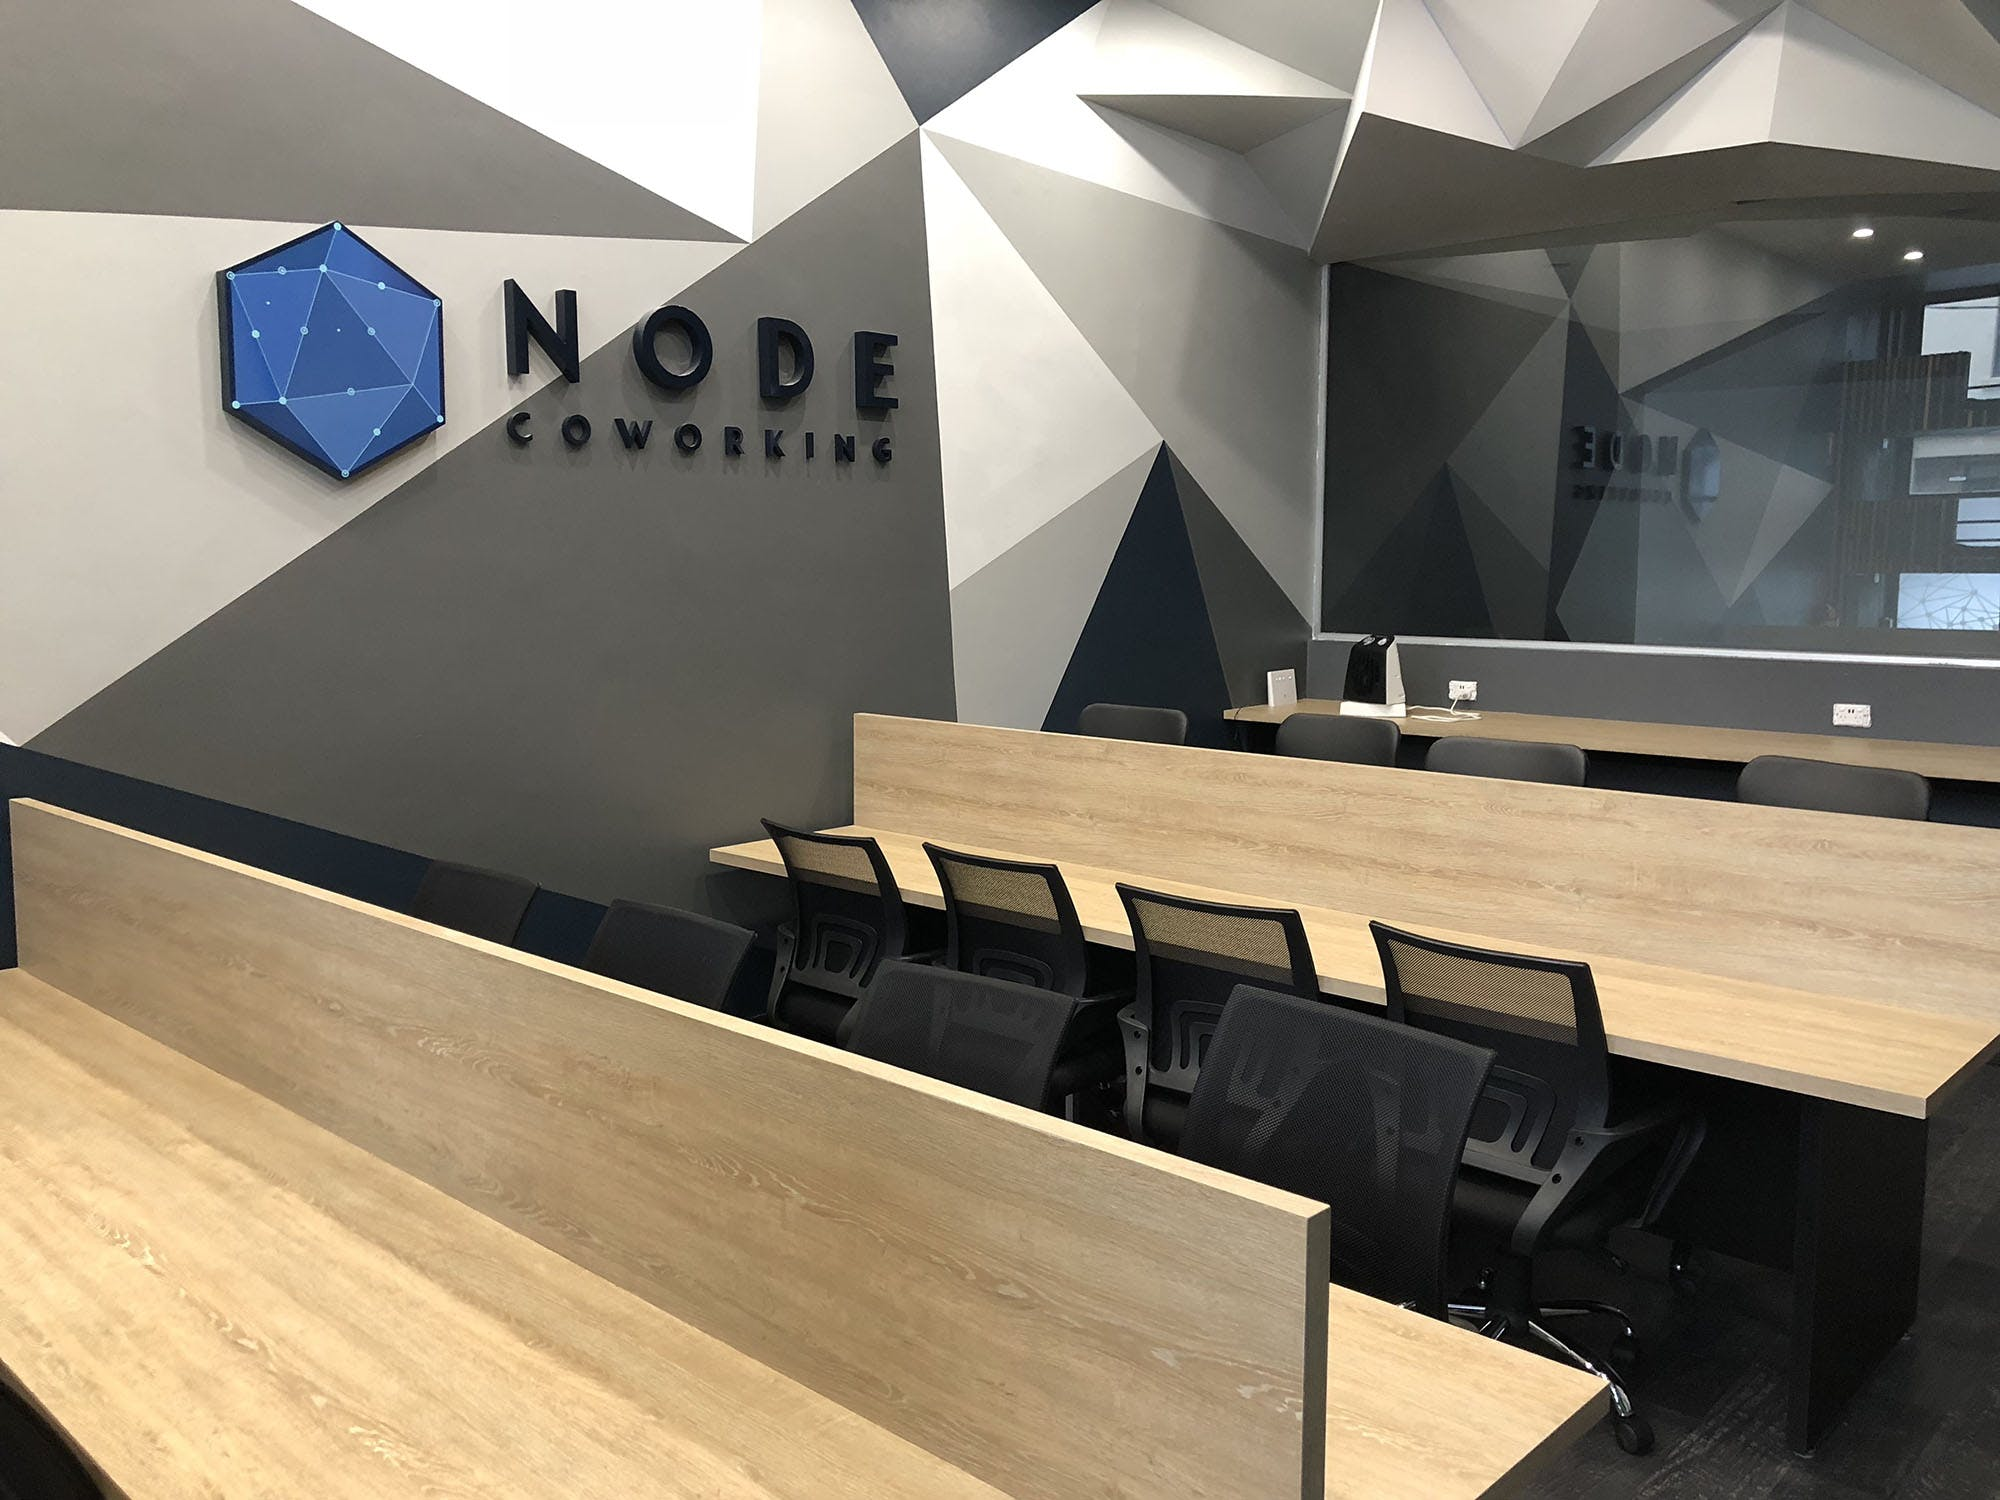 Coworking at Node Coworking, image 1